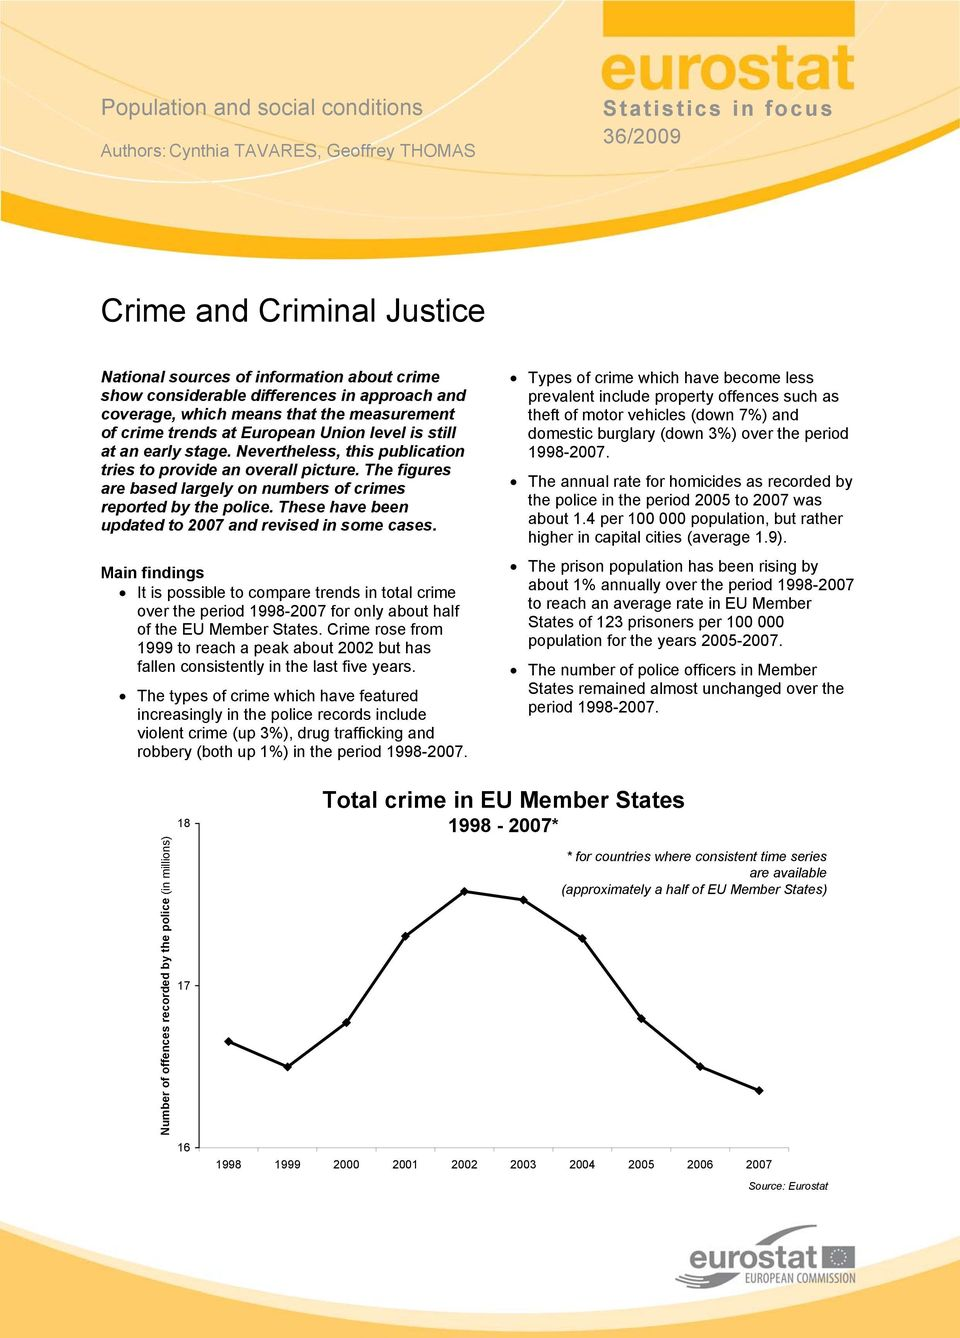 Nevertheless, this publication tries to provide an overall picture. The figures are based largely on numbers of crimes reported by the police.